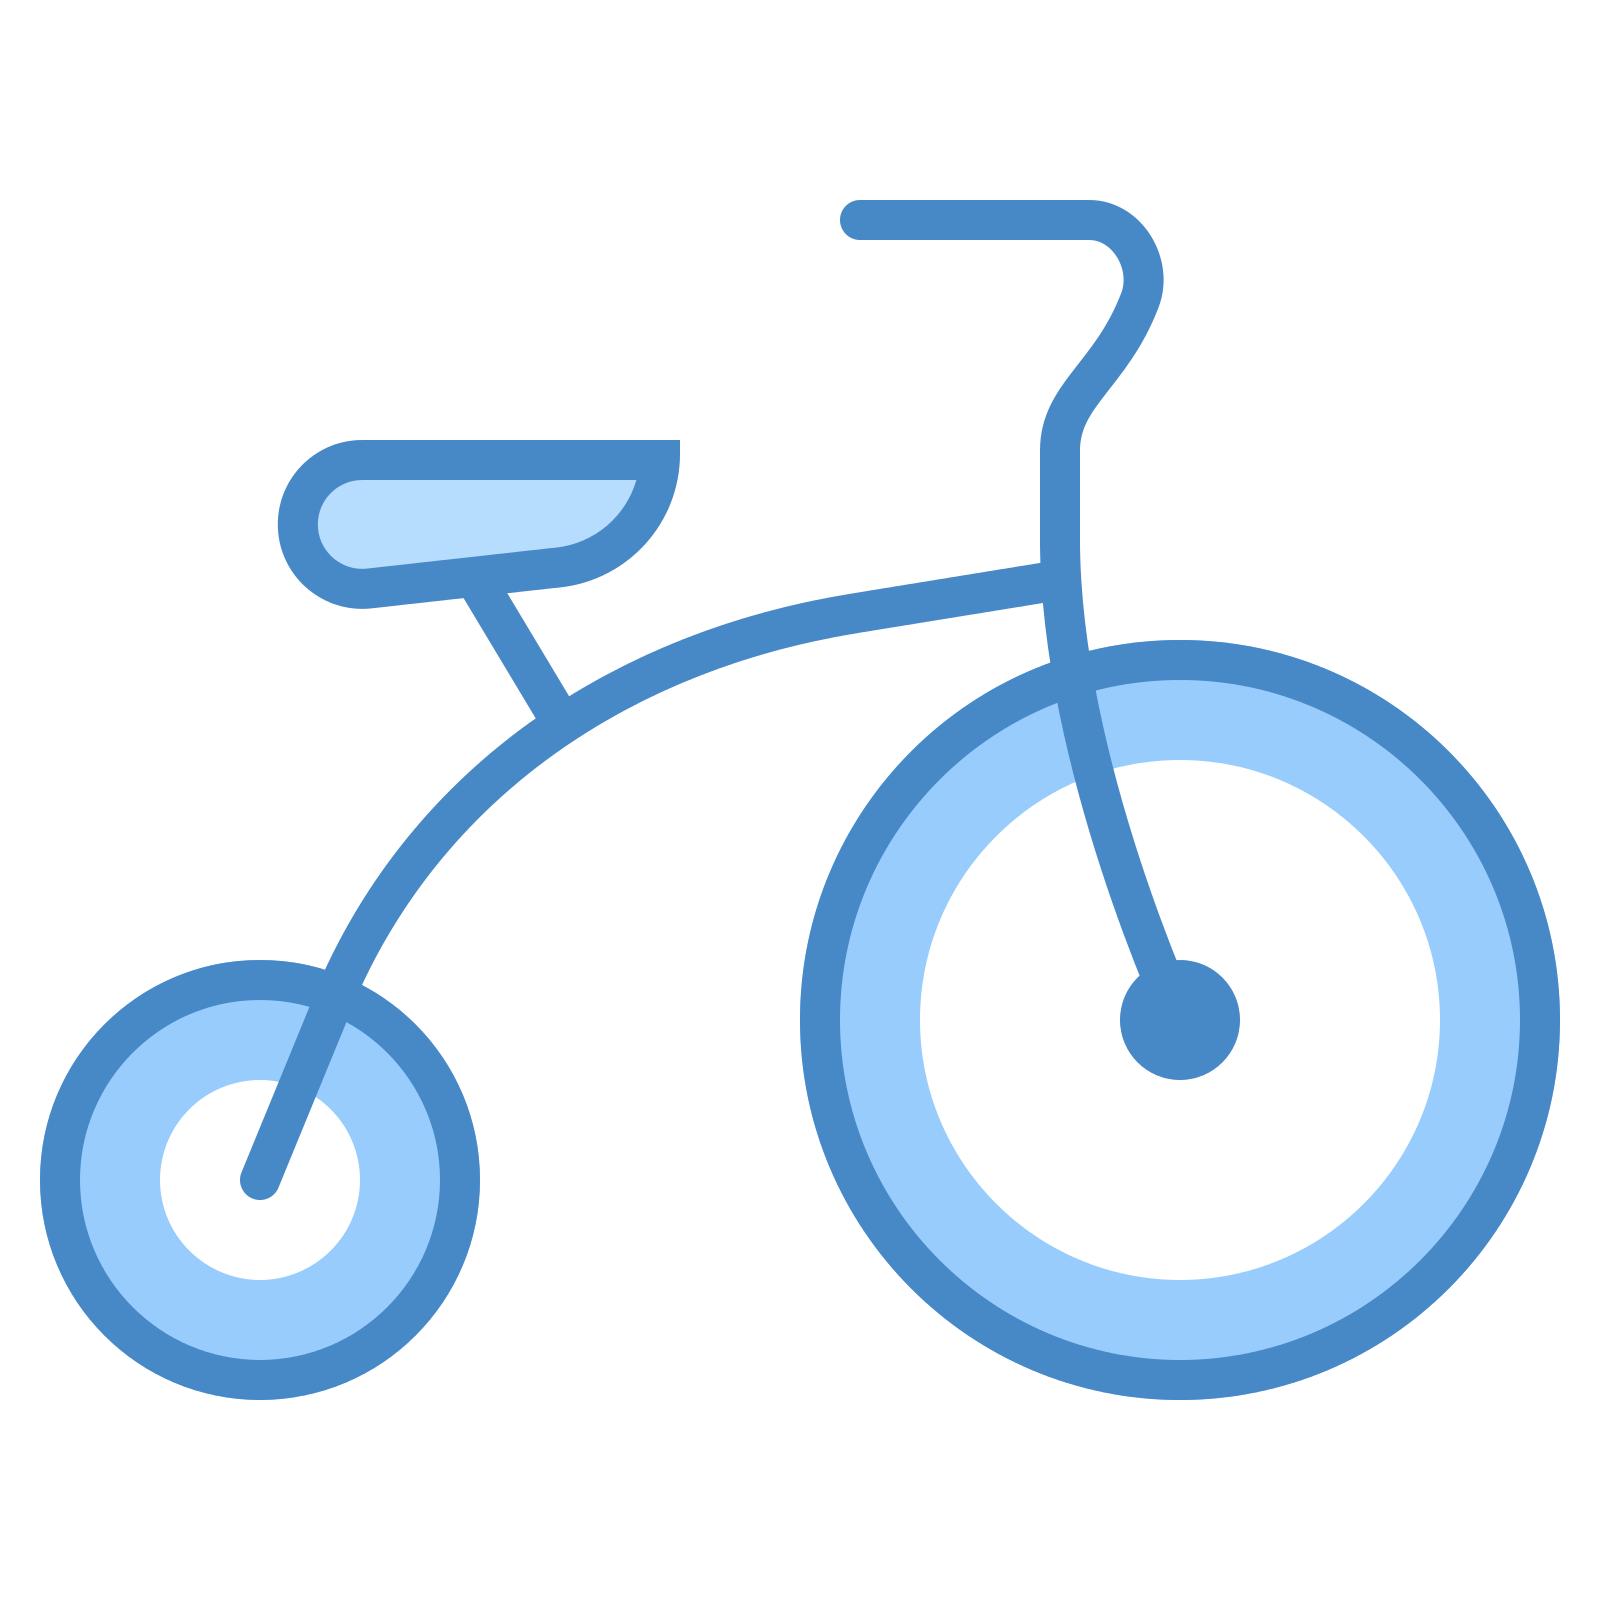 Tricycle clipart blue At Tricycle Tricycle Download Icons8